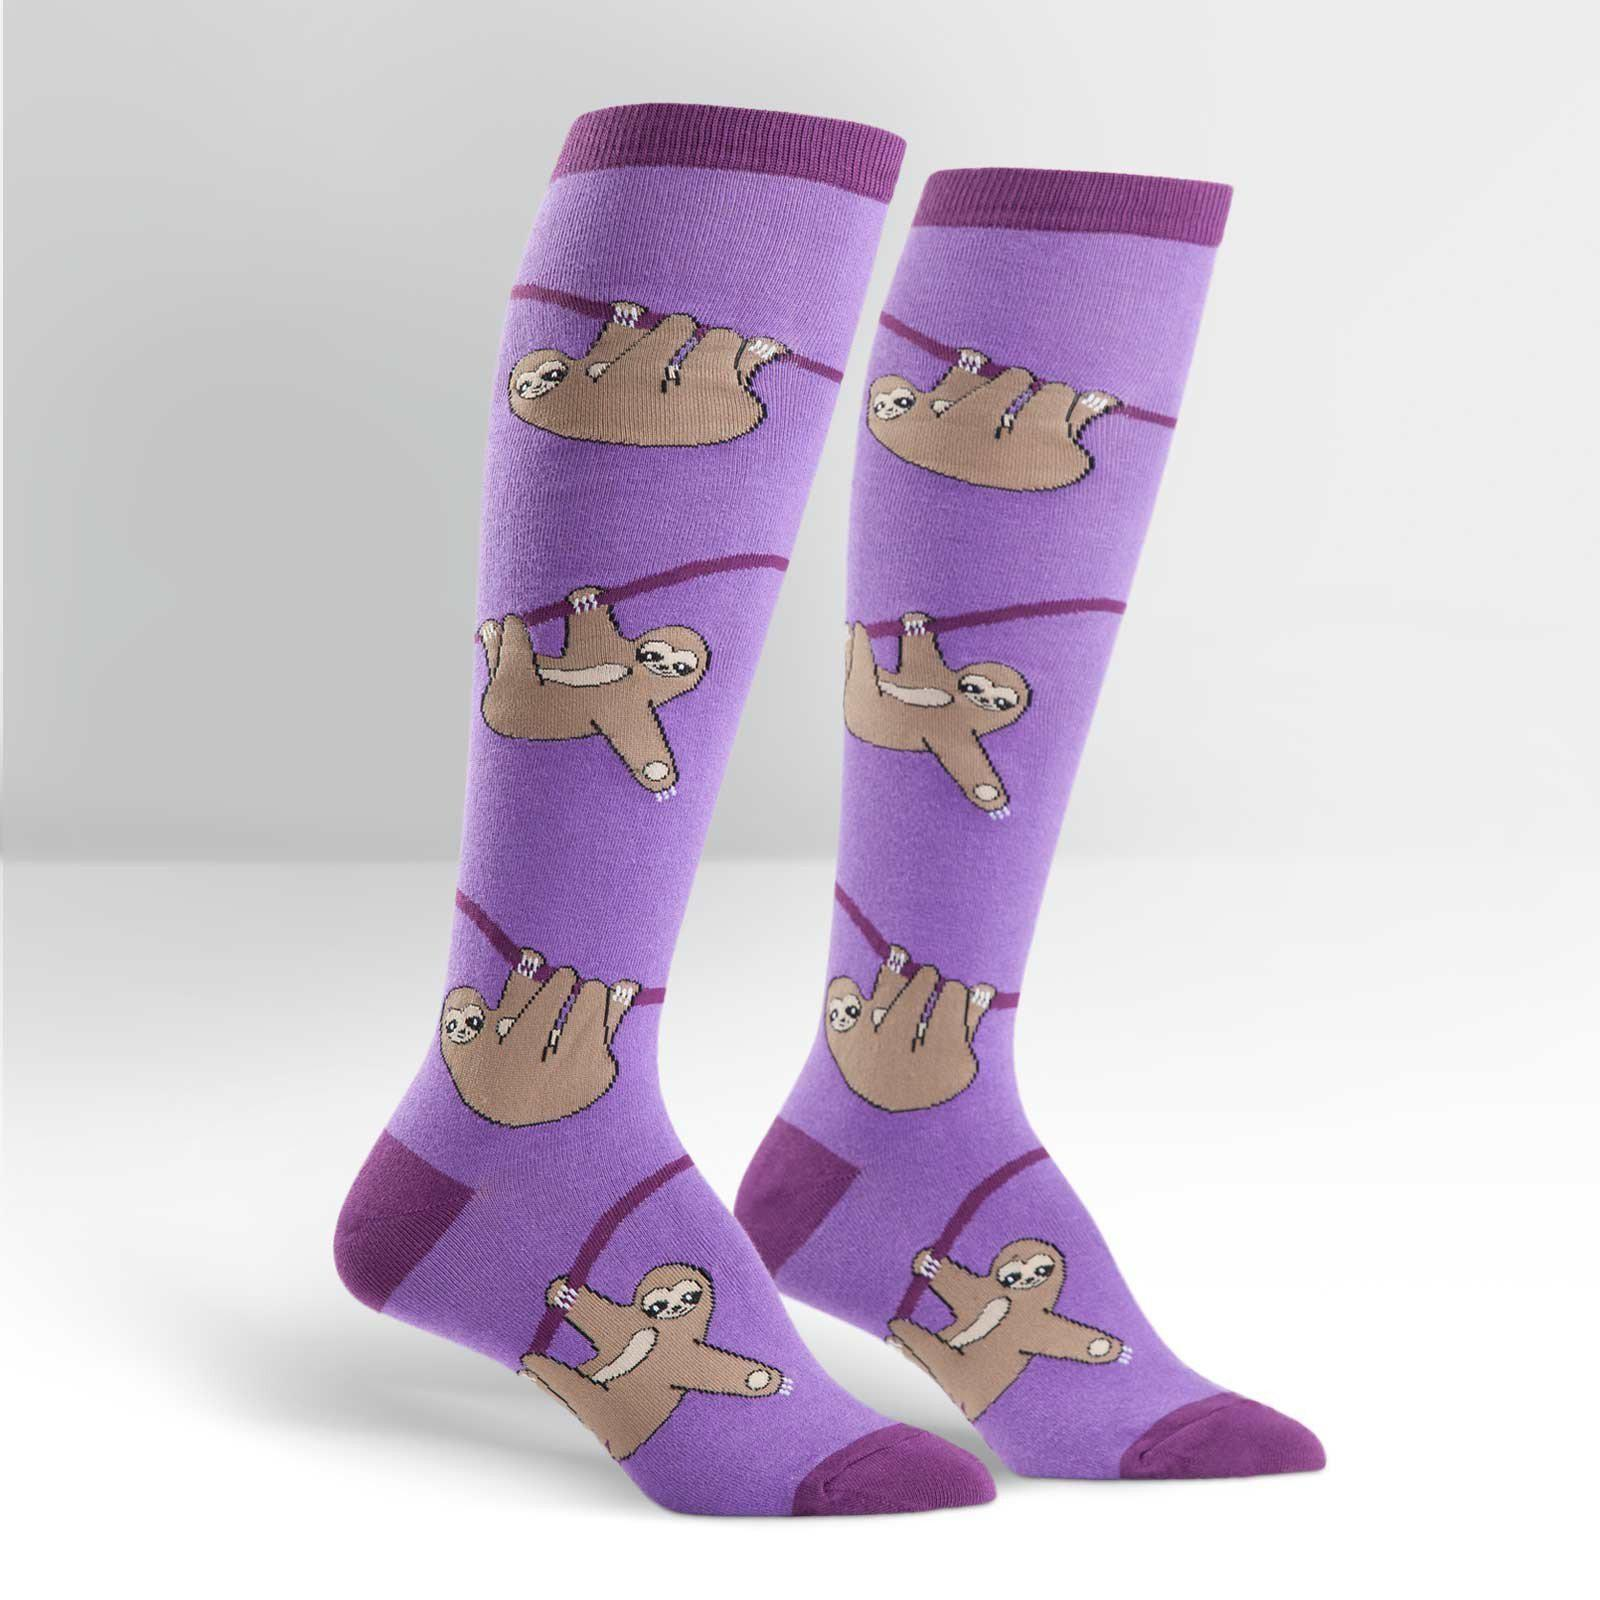 Sock It To Me - Sloth Knee High Socks | Women's - Knock Your Socks Off